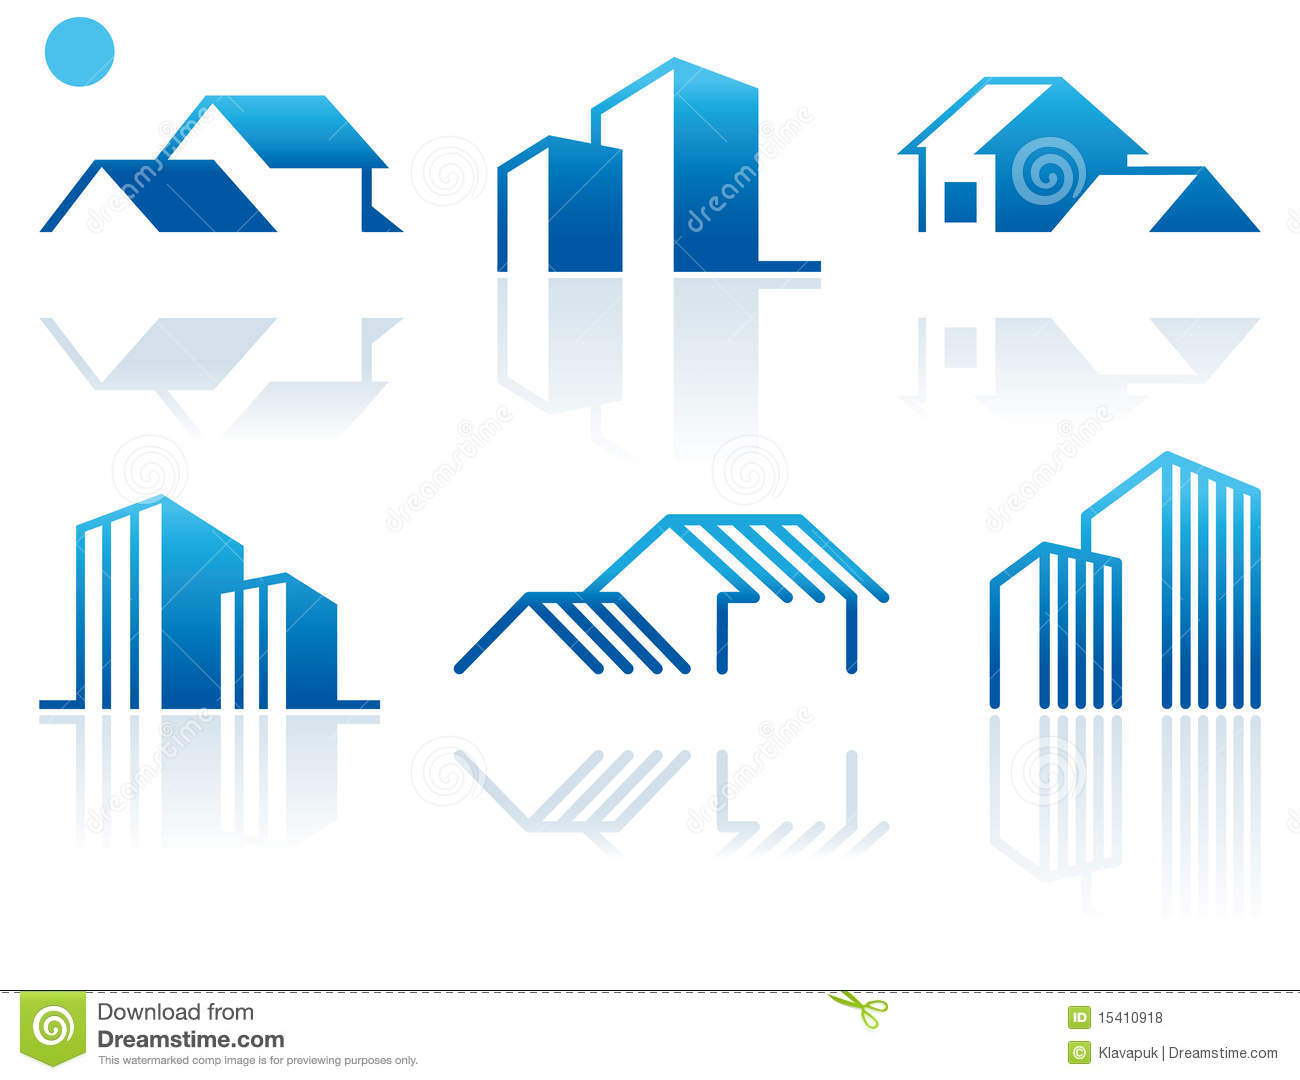 Real estate symbols stock vector illustration of design 15410918 real estate symbols biocorpaavc Image collections